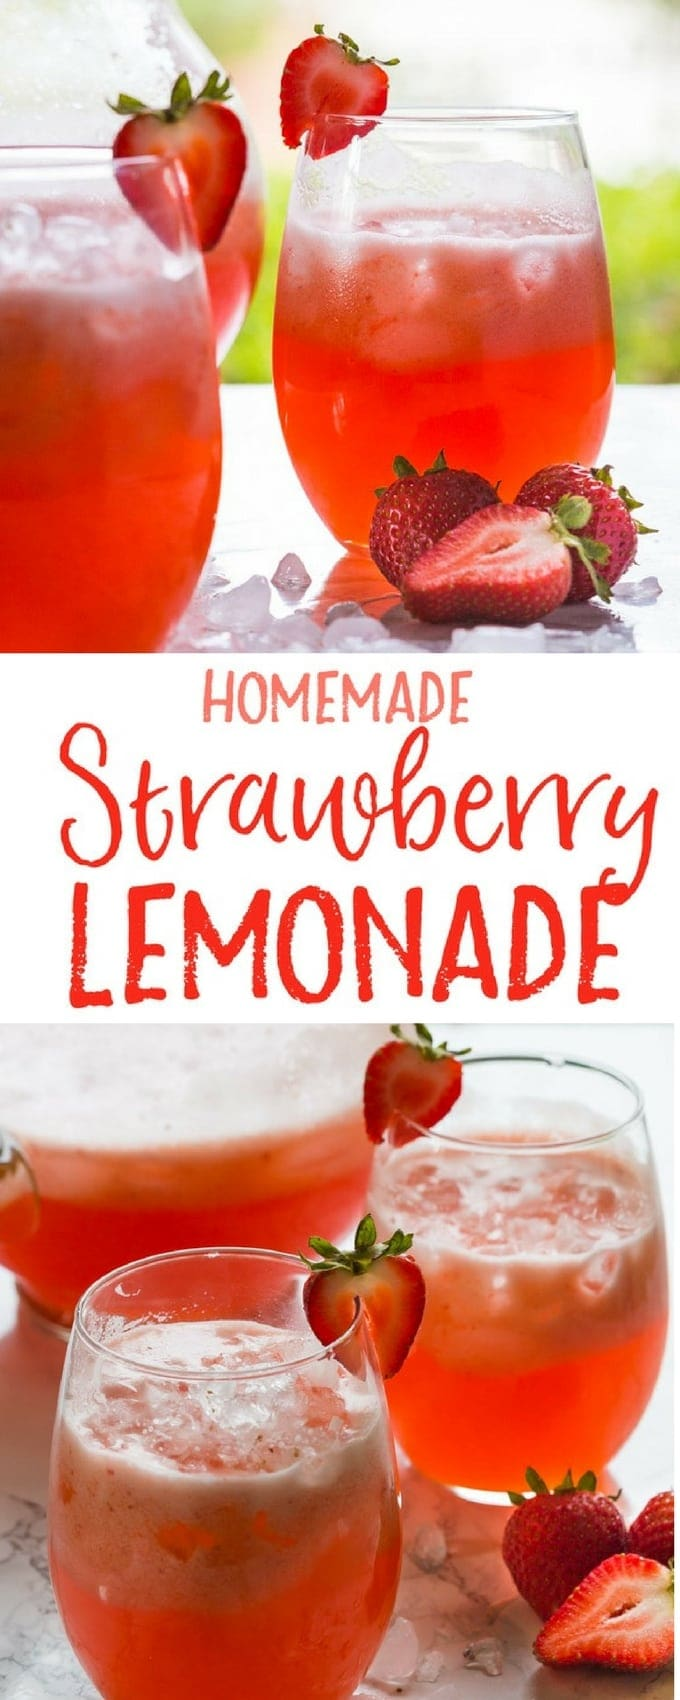 Make this Homemade Strawberry Lemonade in only FIVE minutes!! It's so good, you'll never want to go back to store bought! | gluten free, dairy free, vegan |